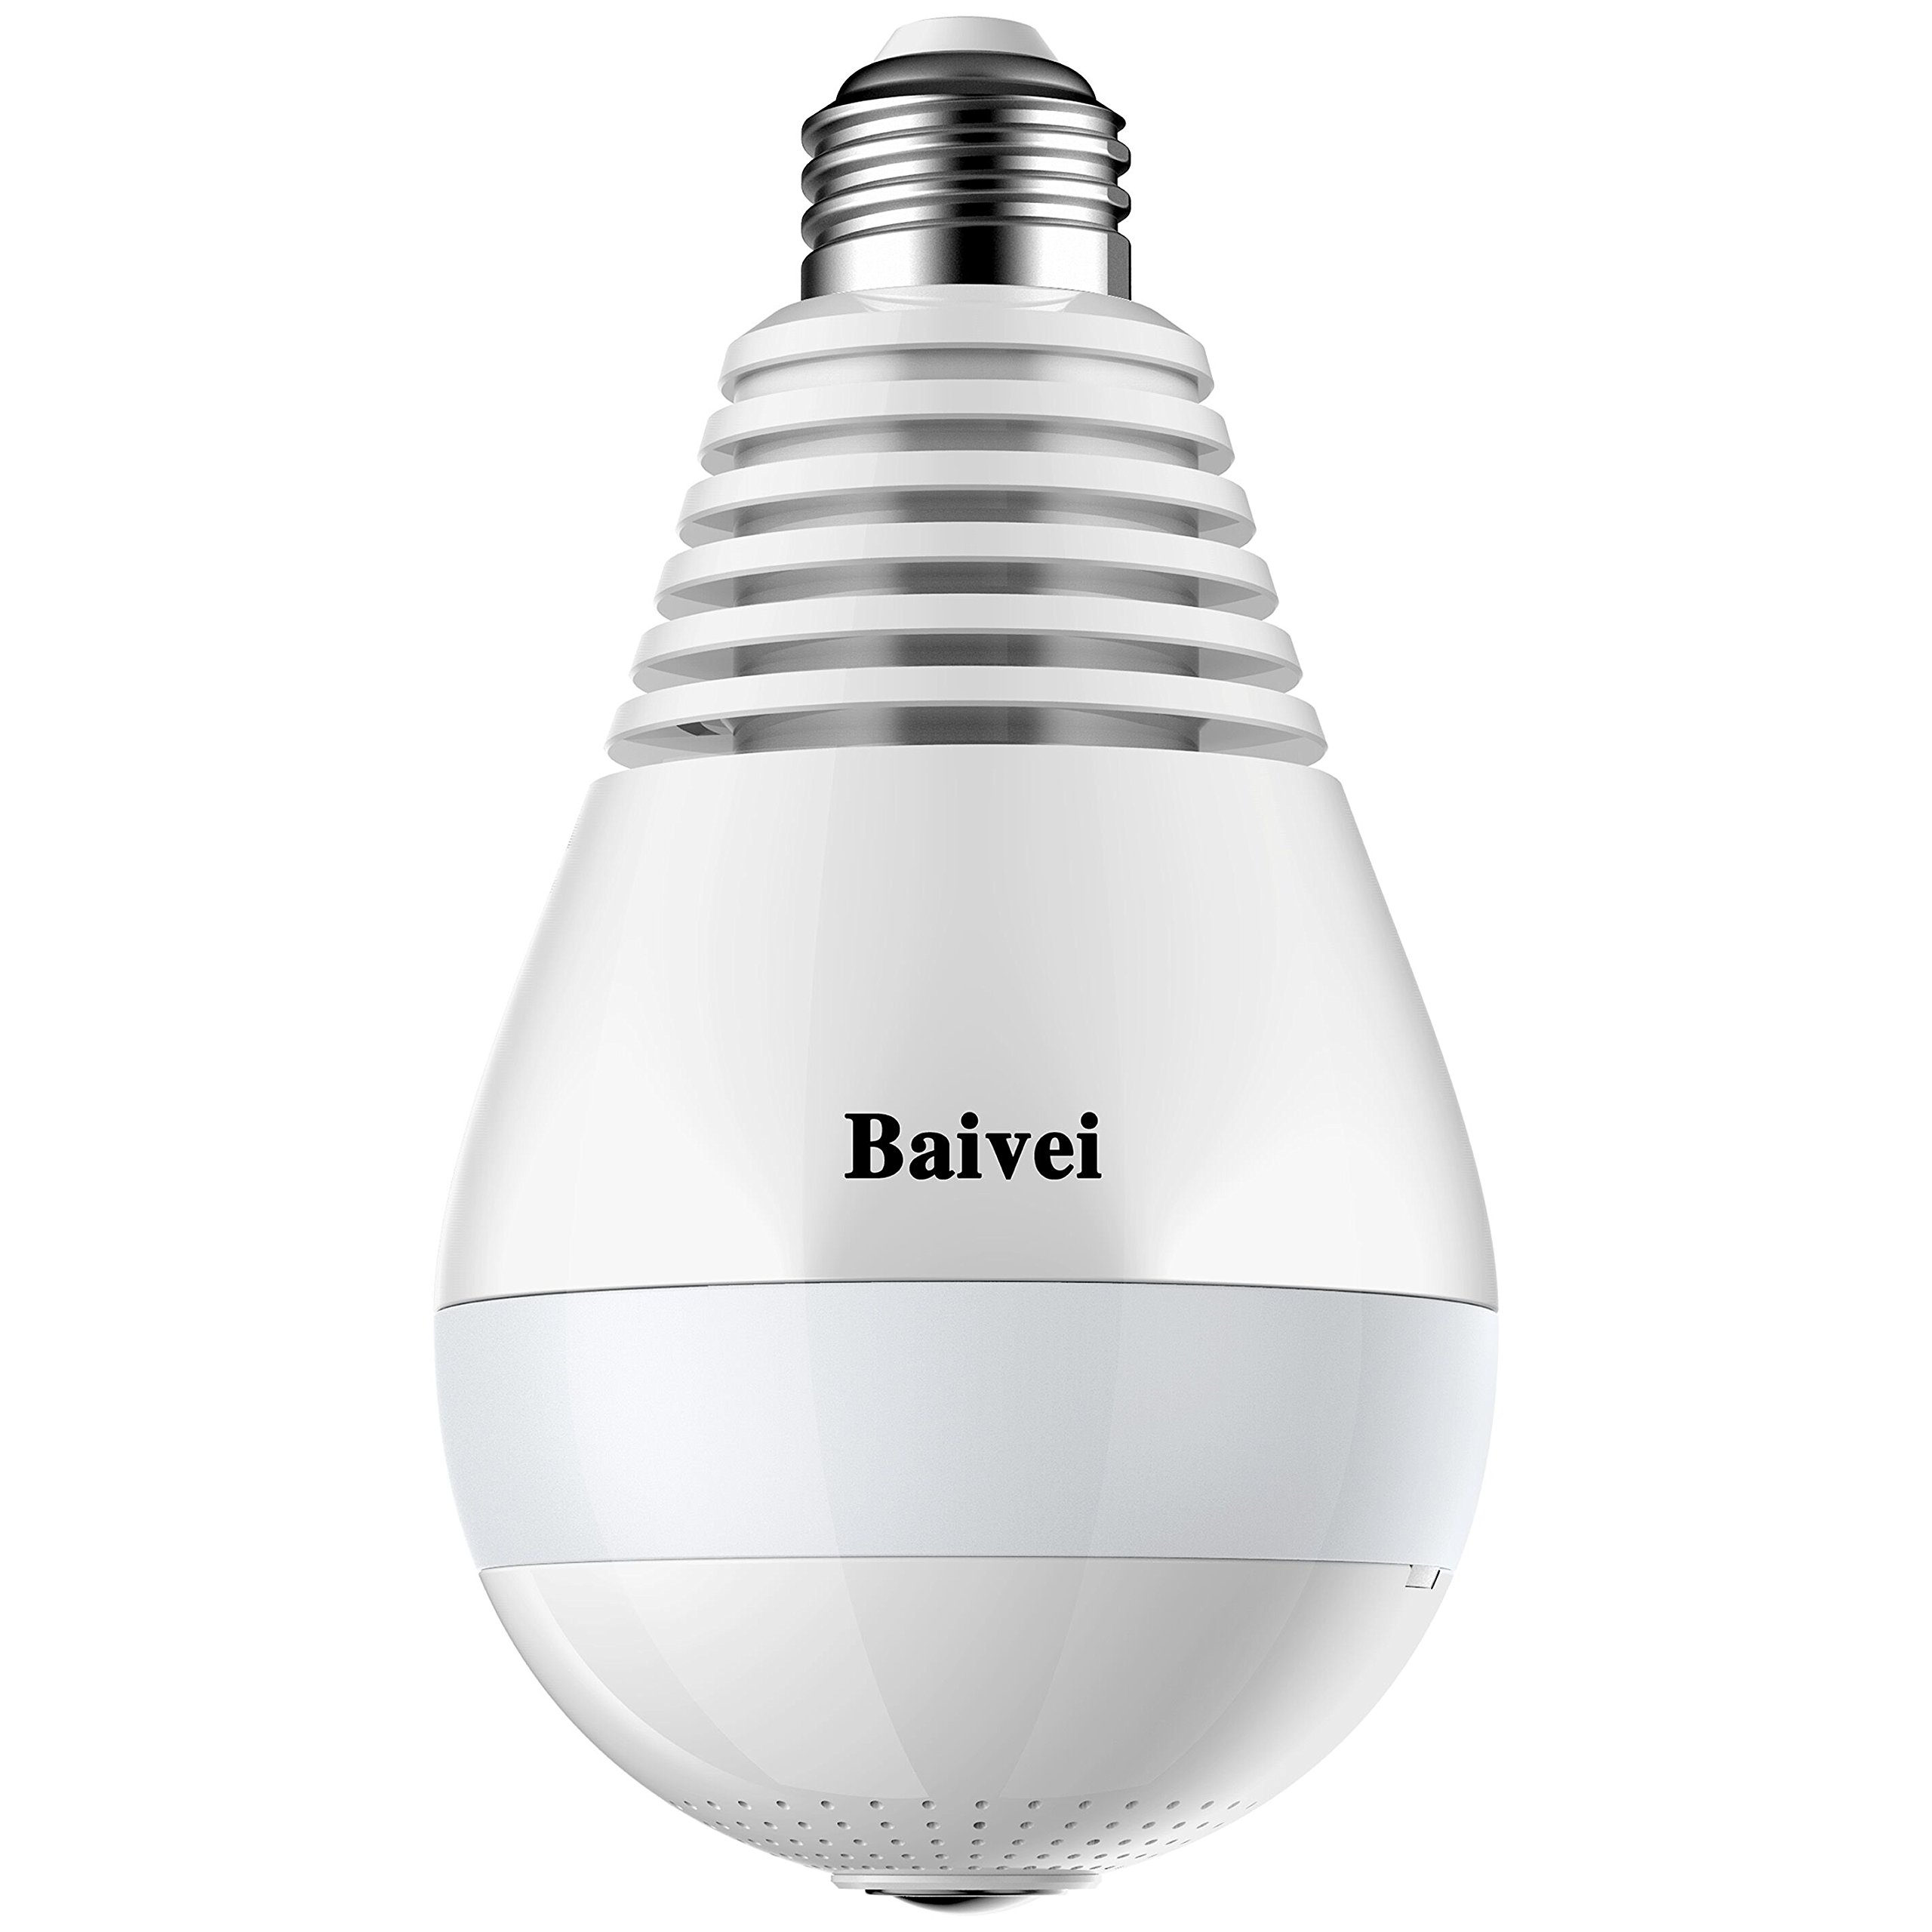 Baivei 960P Wireless WiFi IP Panoramic Bulb Camera 360 Degrees Fisheye Lens For Home Security System Pet Monitor&Baby Camera,Two Way Talking,Motion Detection(White) by BaiVei